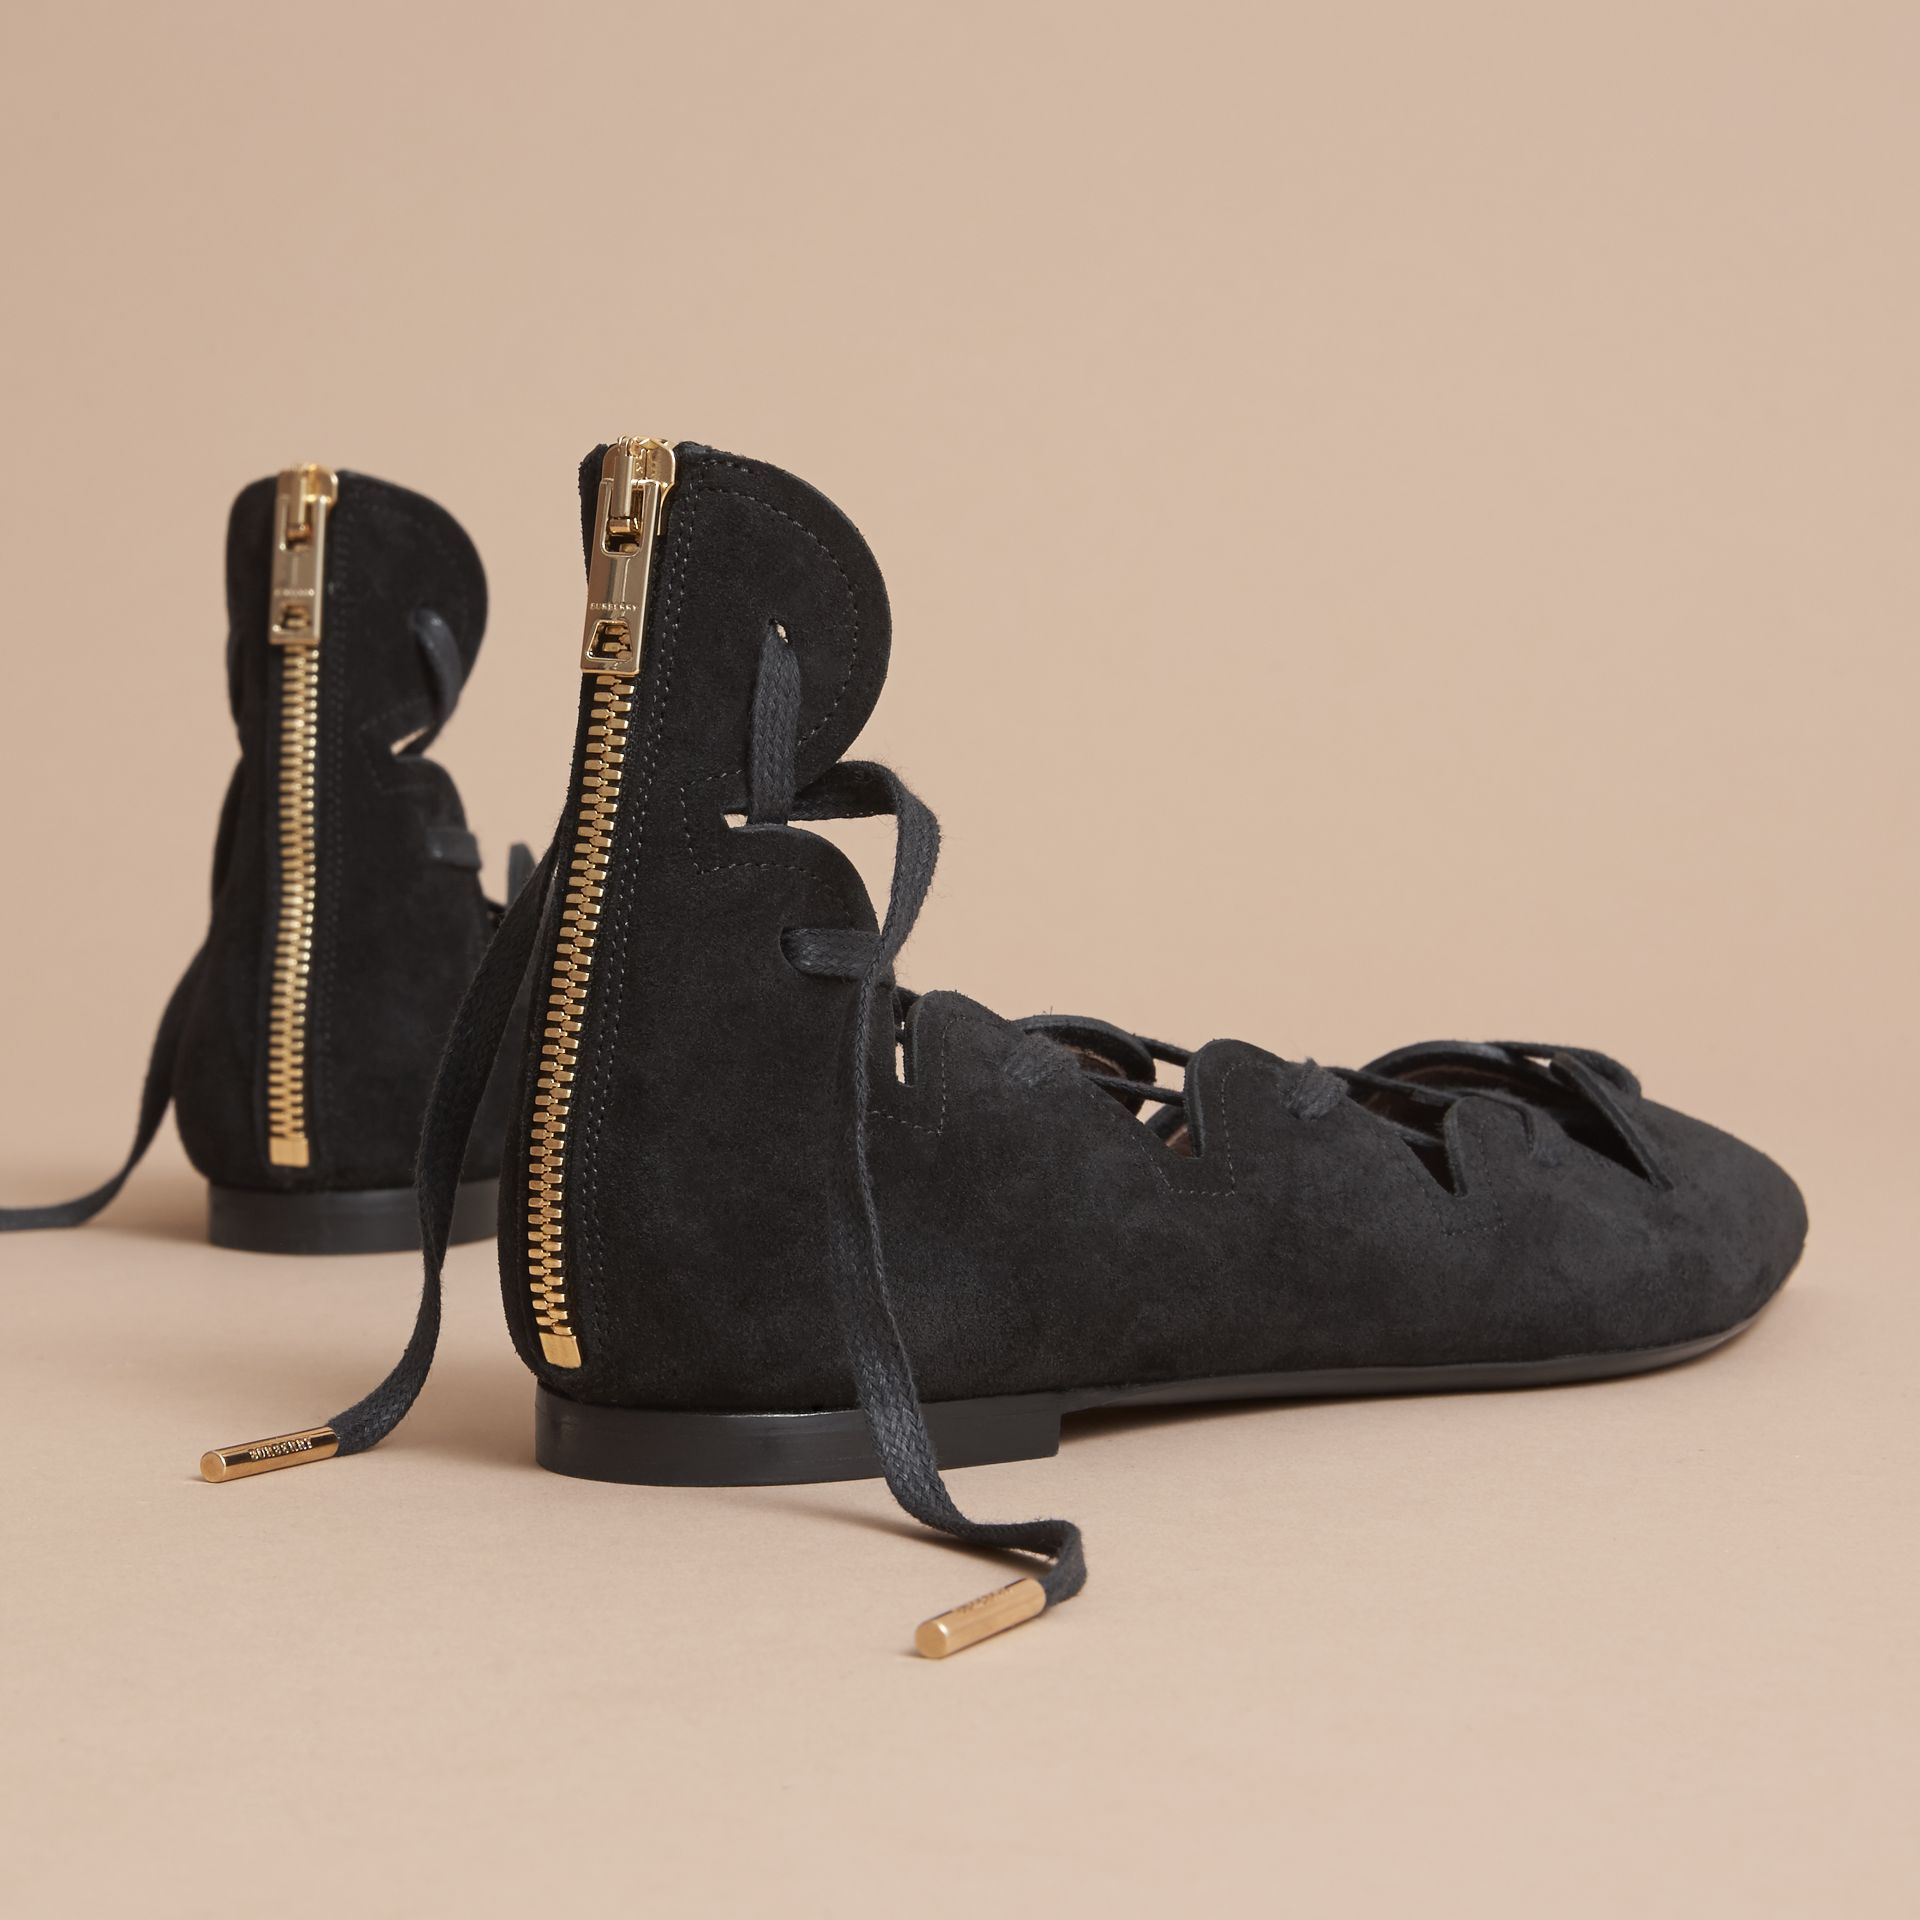 Scalloped Suede Lace-up Ballerinas in Black - Women | Burberry - gallery image 3